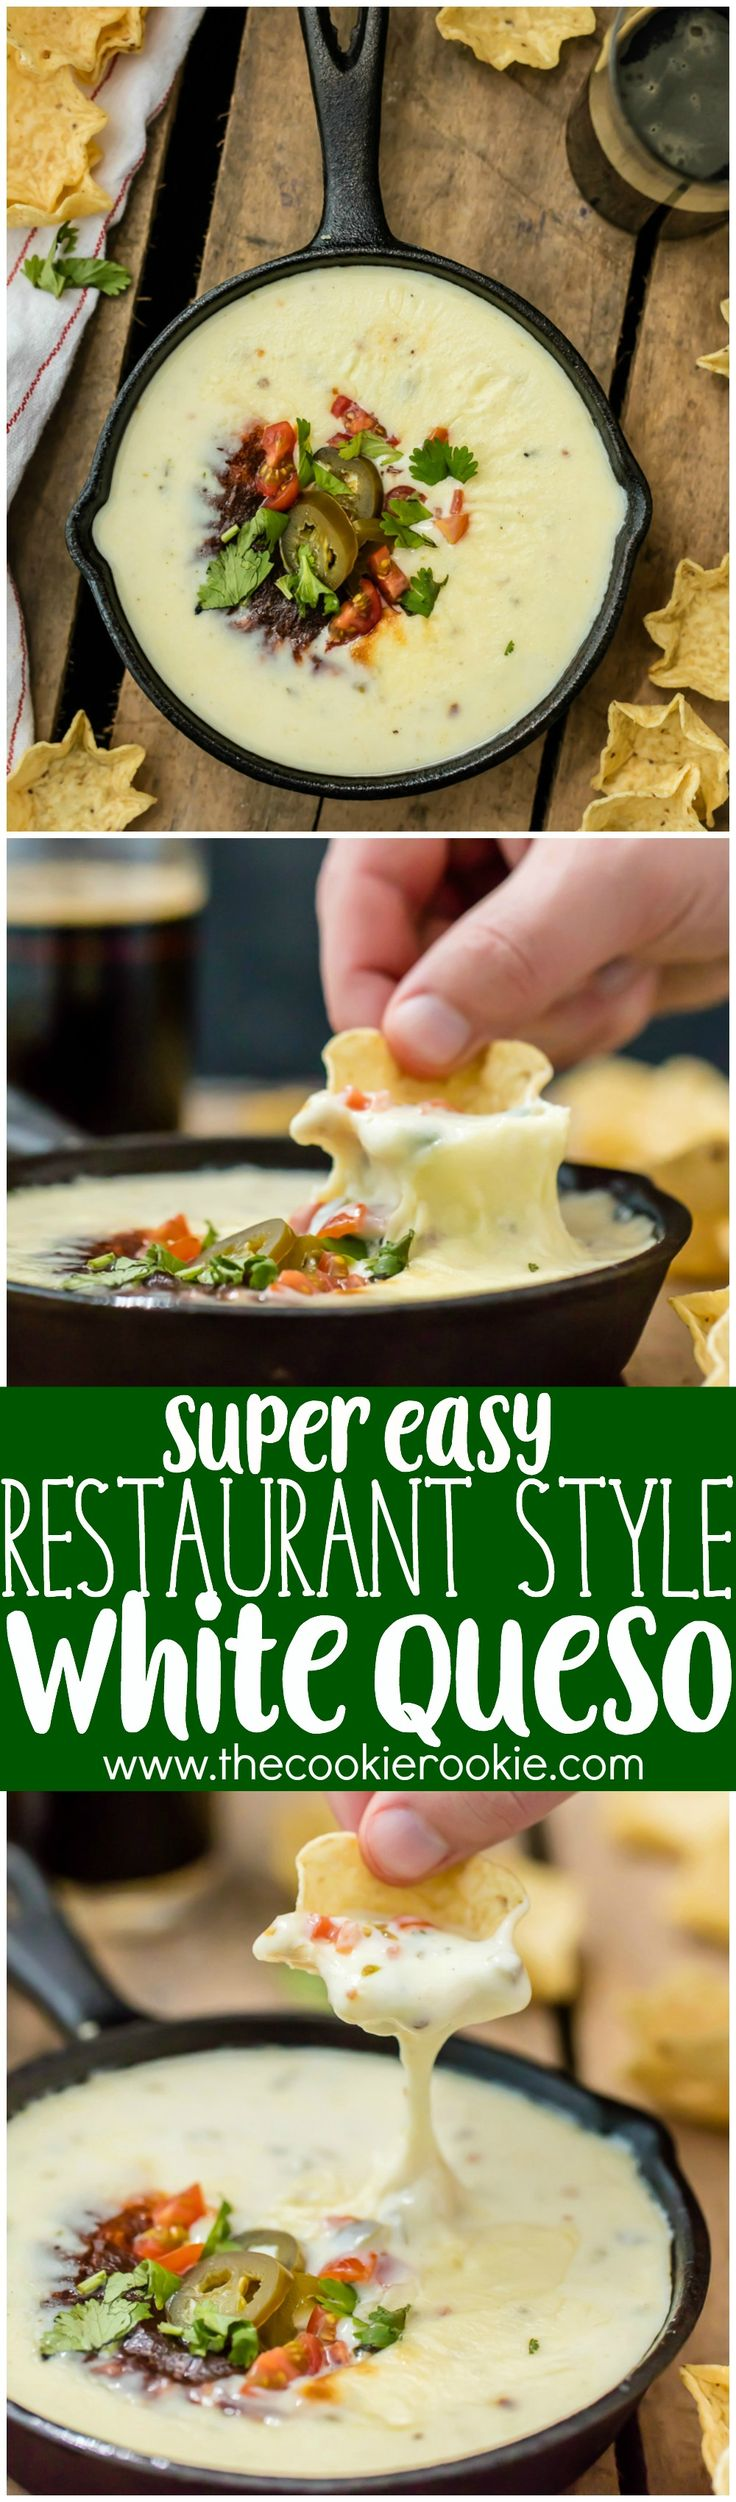 **'must try! Easy Restaurant Style WHITE QUESO is our FAVORITE DIP RECIPE EVER. Tastes just like queso dip at Mexican restaurants! I have been waiting my entire life for this cheese dip recipe!